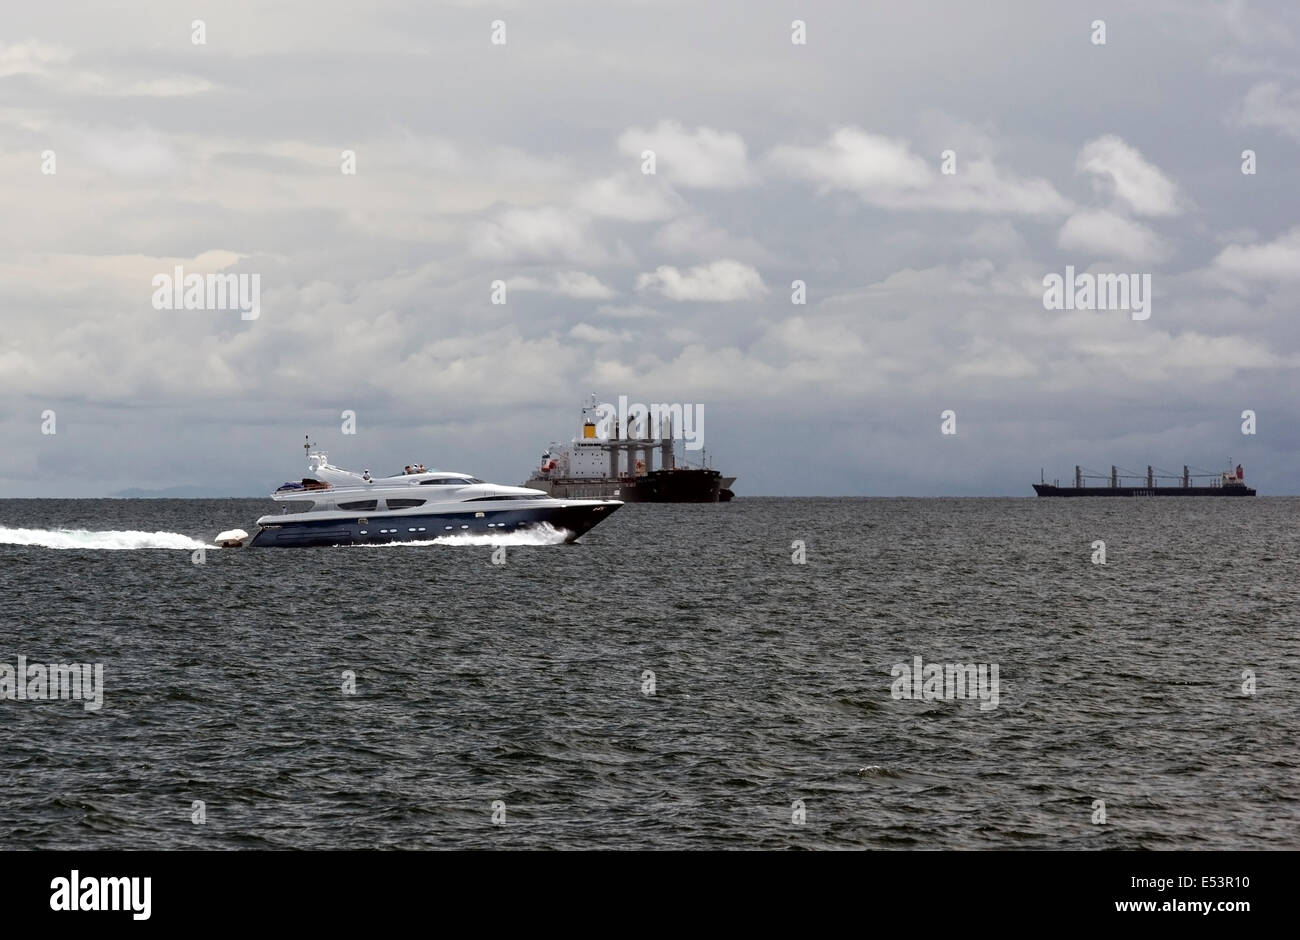 Yacht going to Taboga island and cargo ships waiting to cross Panama Canal in the Gulf of Panama - Stock Image